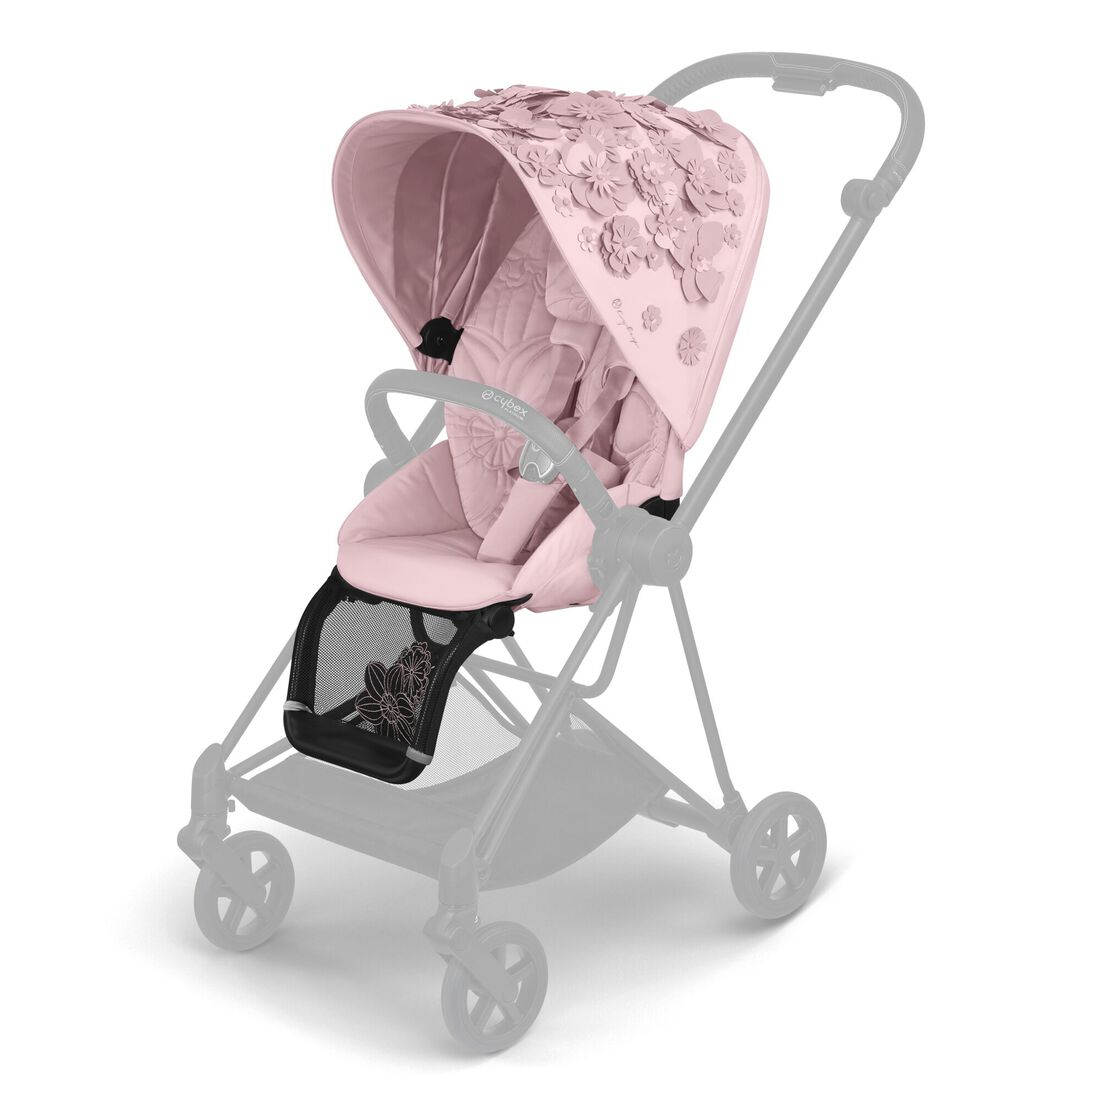 CYBEX Mios Seat Pack - Pale Blush in Pale Blush large image number 1